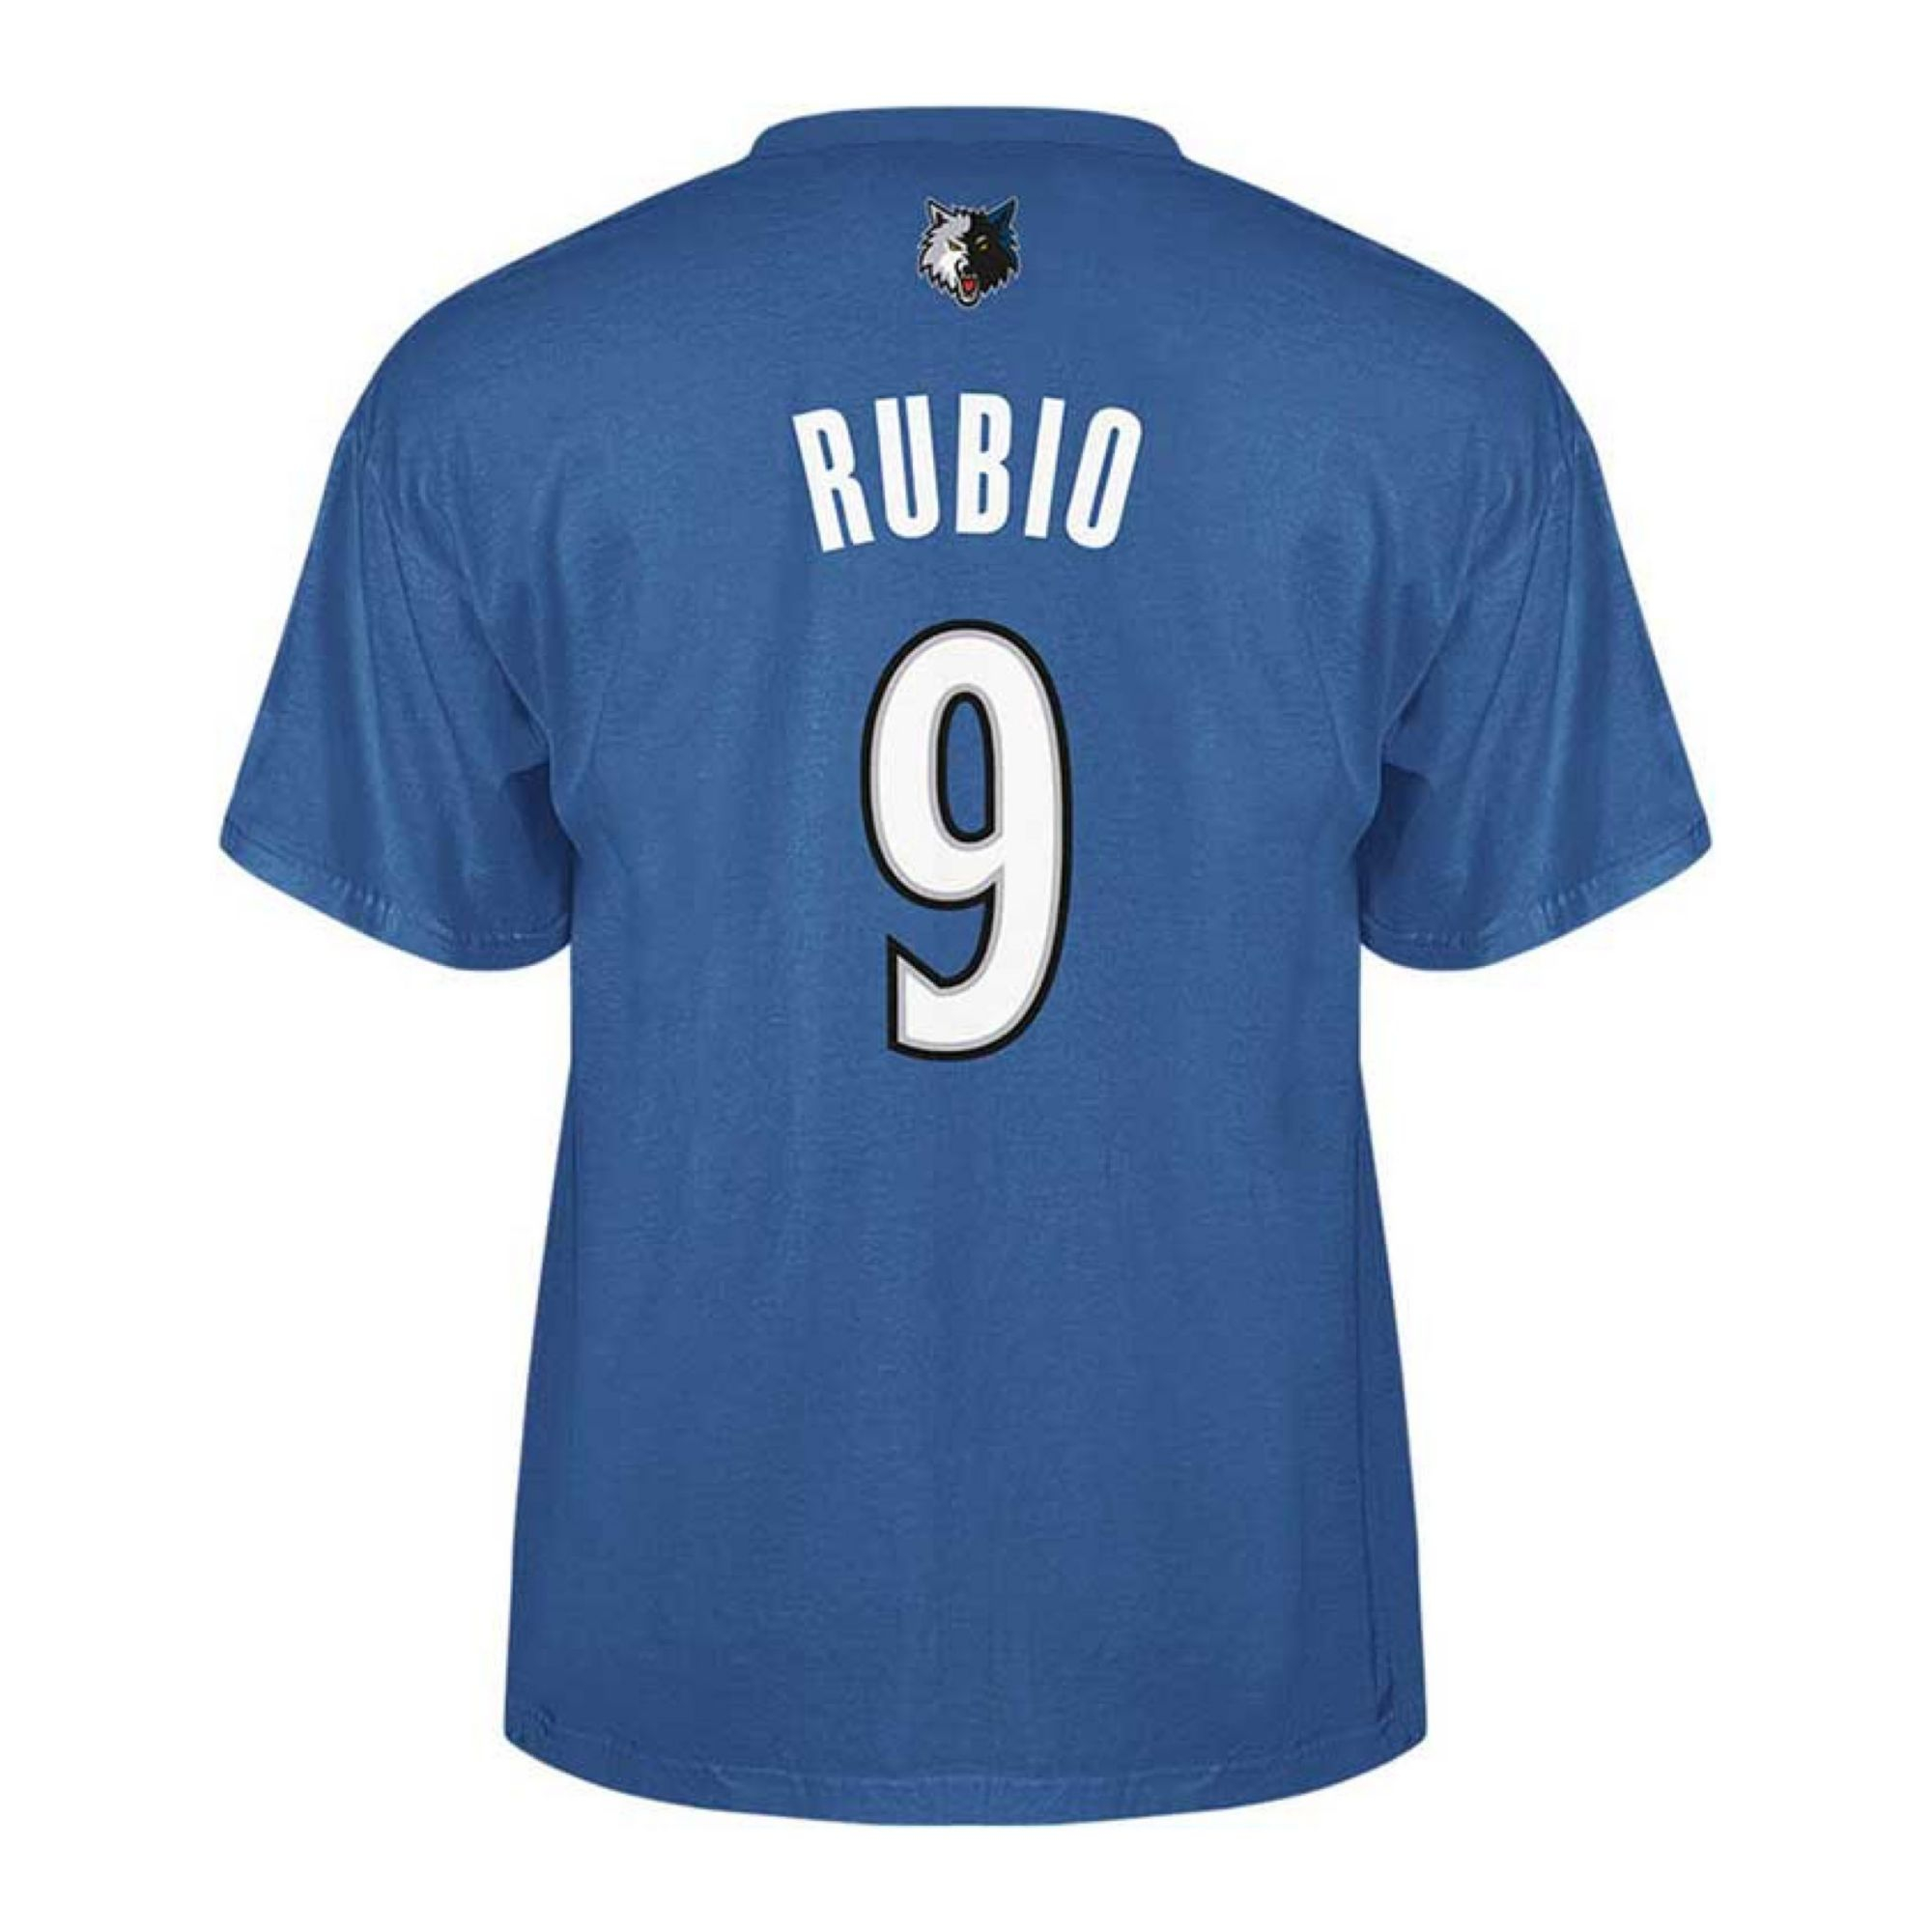 Adidas men 39 s minnesota timberwolves ricky rubio player t for Timberwolves new logo shirt